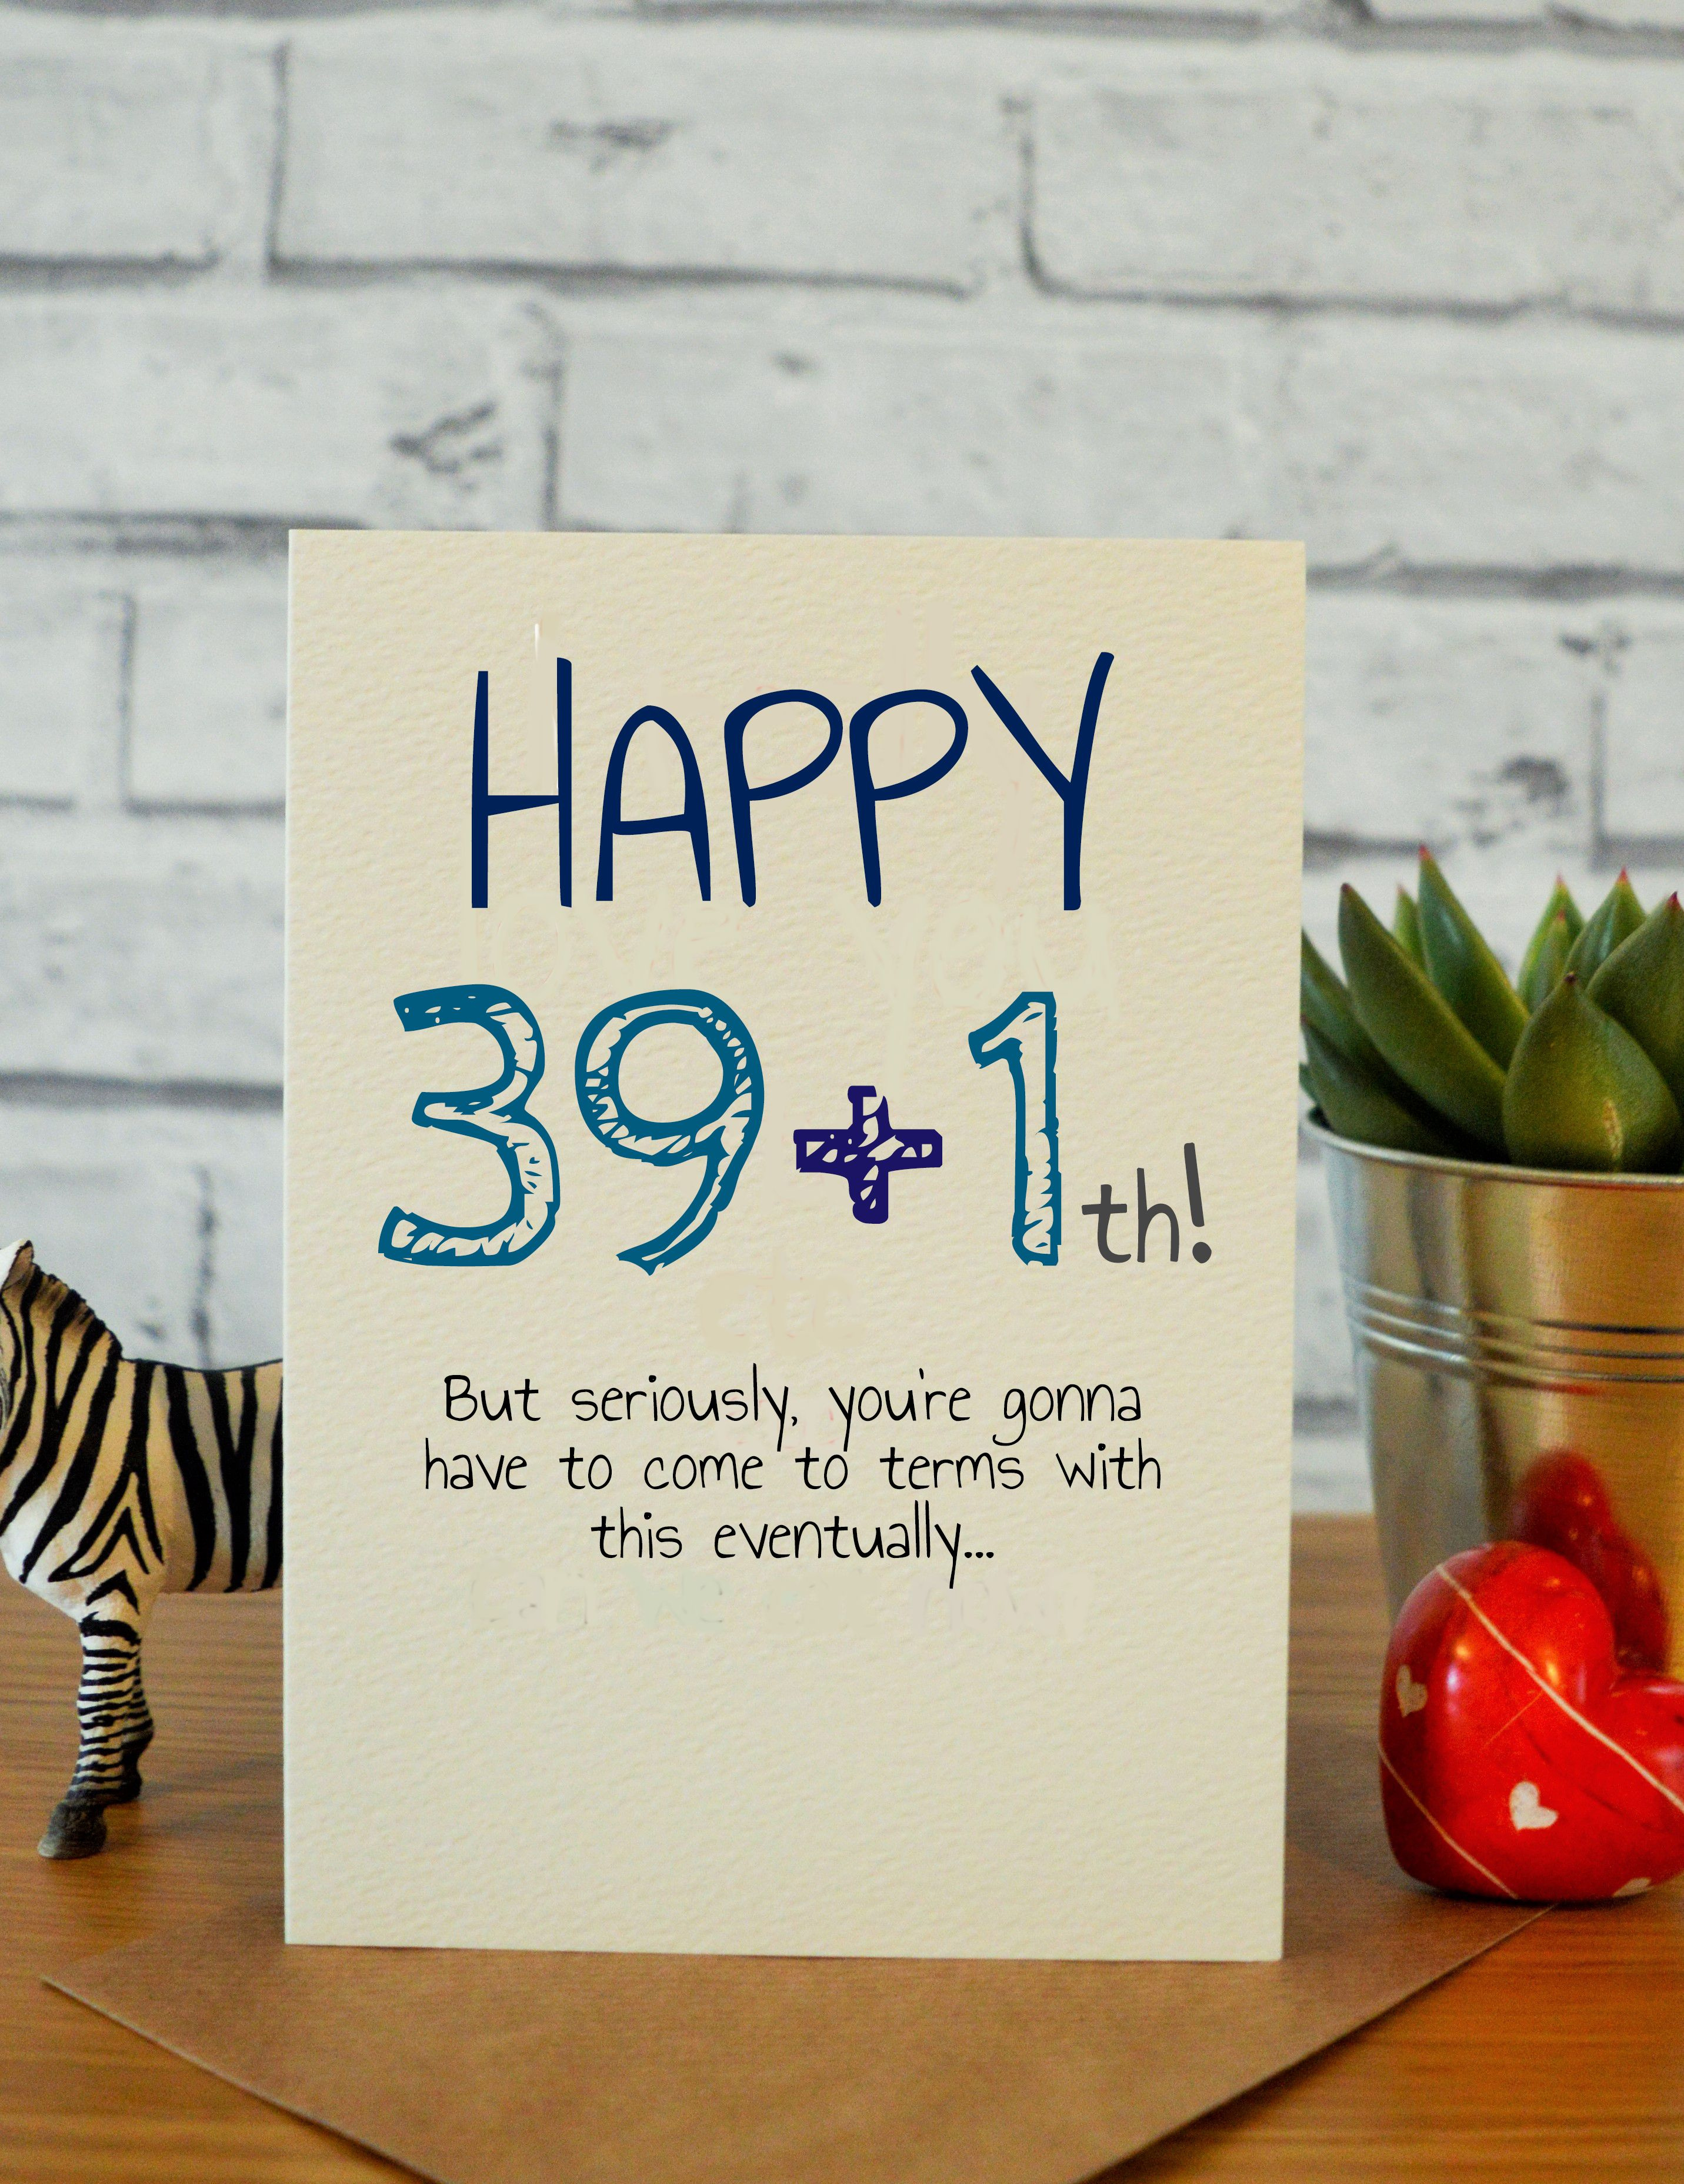 Funny Ideas For Birthday Cards Cards Funny Homemade Birthday Cards Scenic 39 1th Gift Ideas